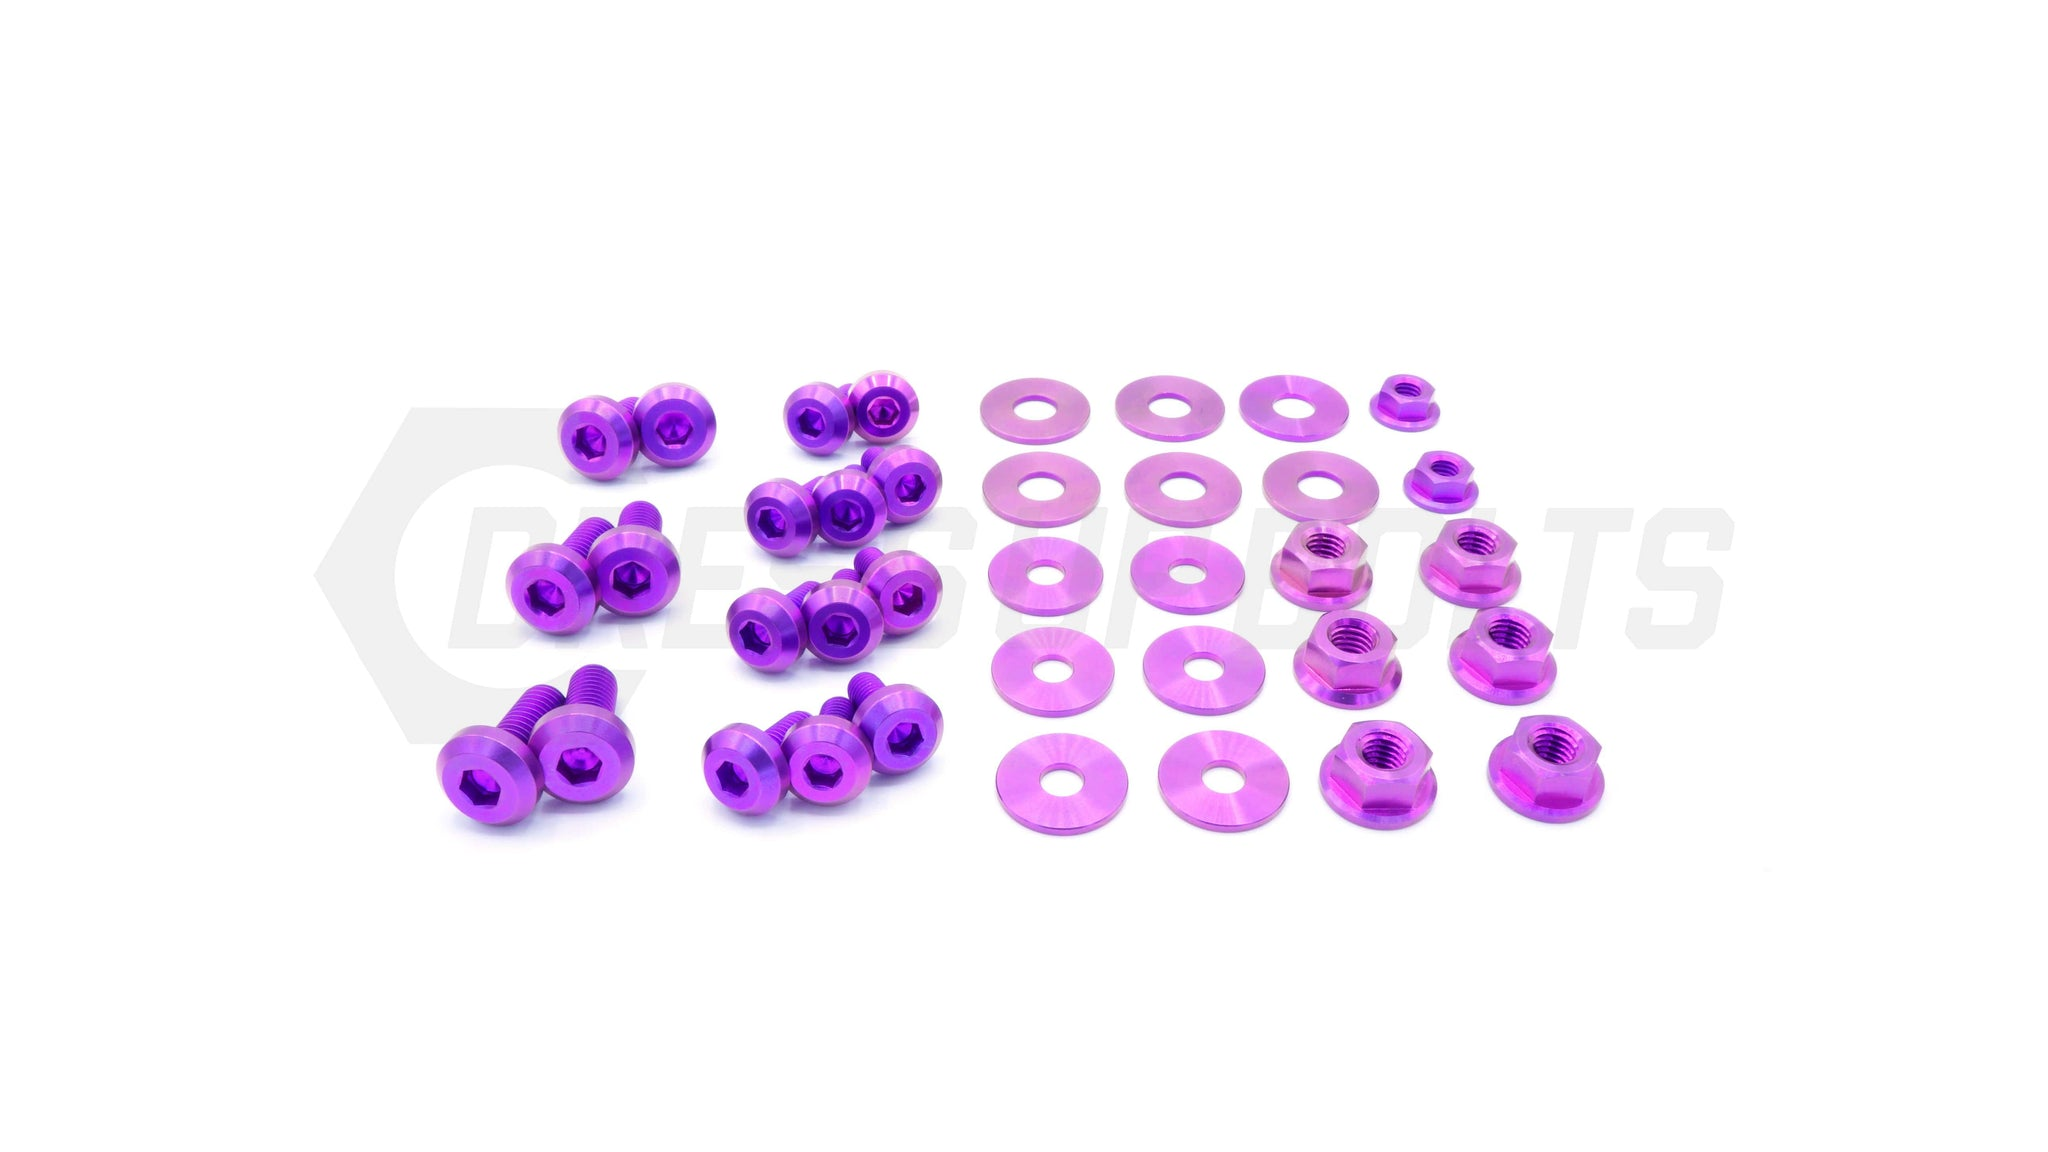 Subaru Legacy/GT (2005-2009) Titanium Dress Up Bolts Engine Bay Kit - DressUpBolts.com